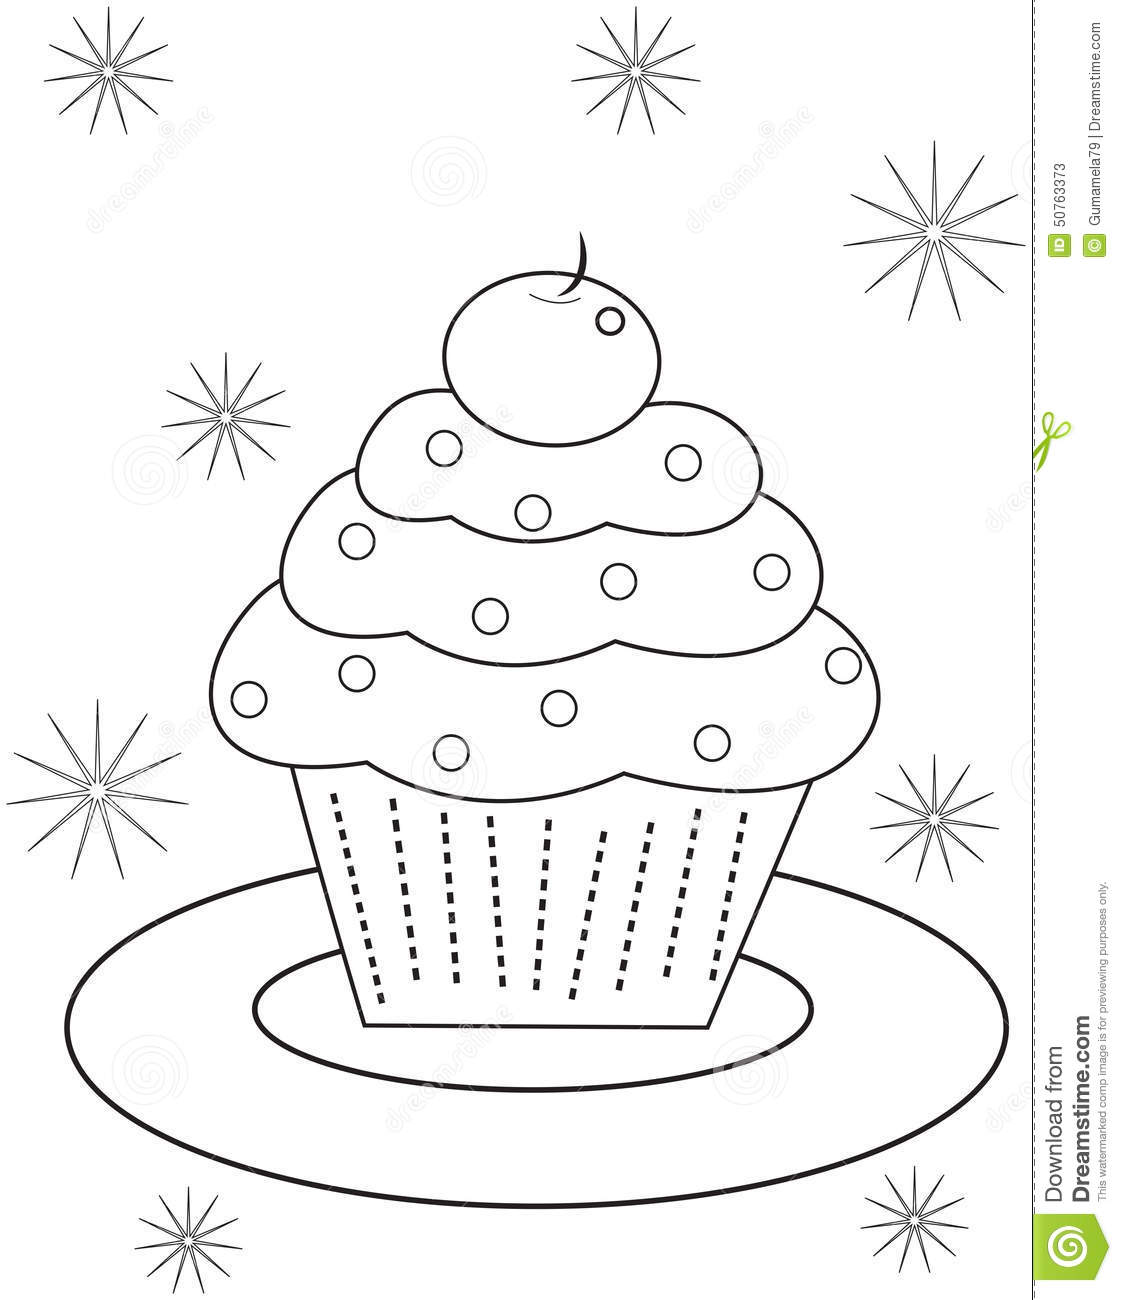 Happy Birthday Lettering 1371534 in addition Dora Coloring Pages Free For Kids together with Cupcake Coloring Page Cupcakes Coloring Pages Cupcake Color Pages Cupcake Coloring Pages For Preschoolers Pin Drawn Page Pencil And Cartoon Cupcake Coloring Pages furthermore Mother additionally Stock Illustration Cupcake Coloring Page Useful As Book Kids Image50763373. on happy birthday cartoon cake